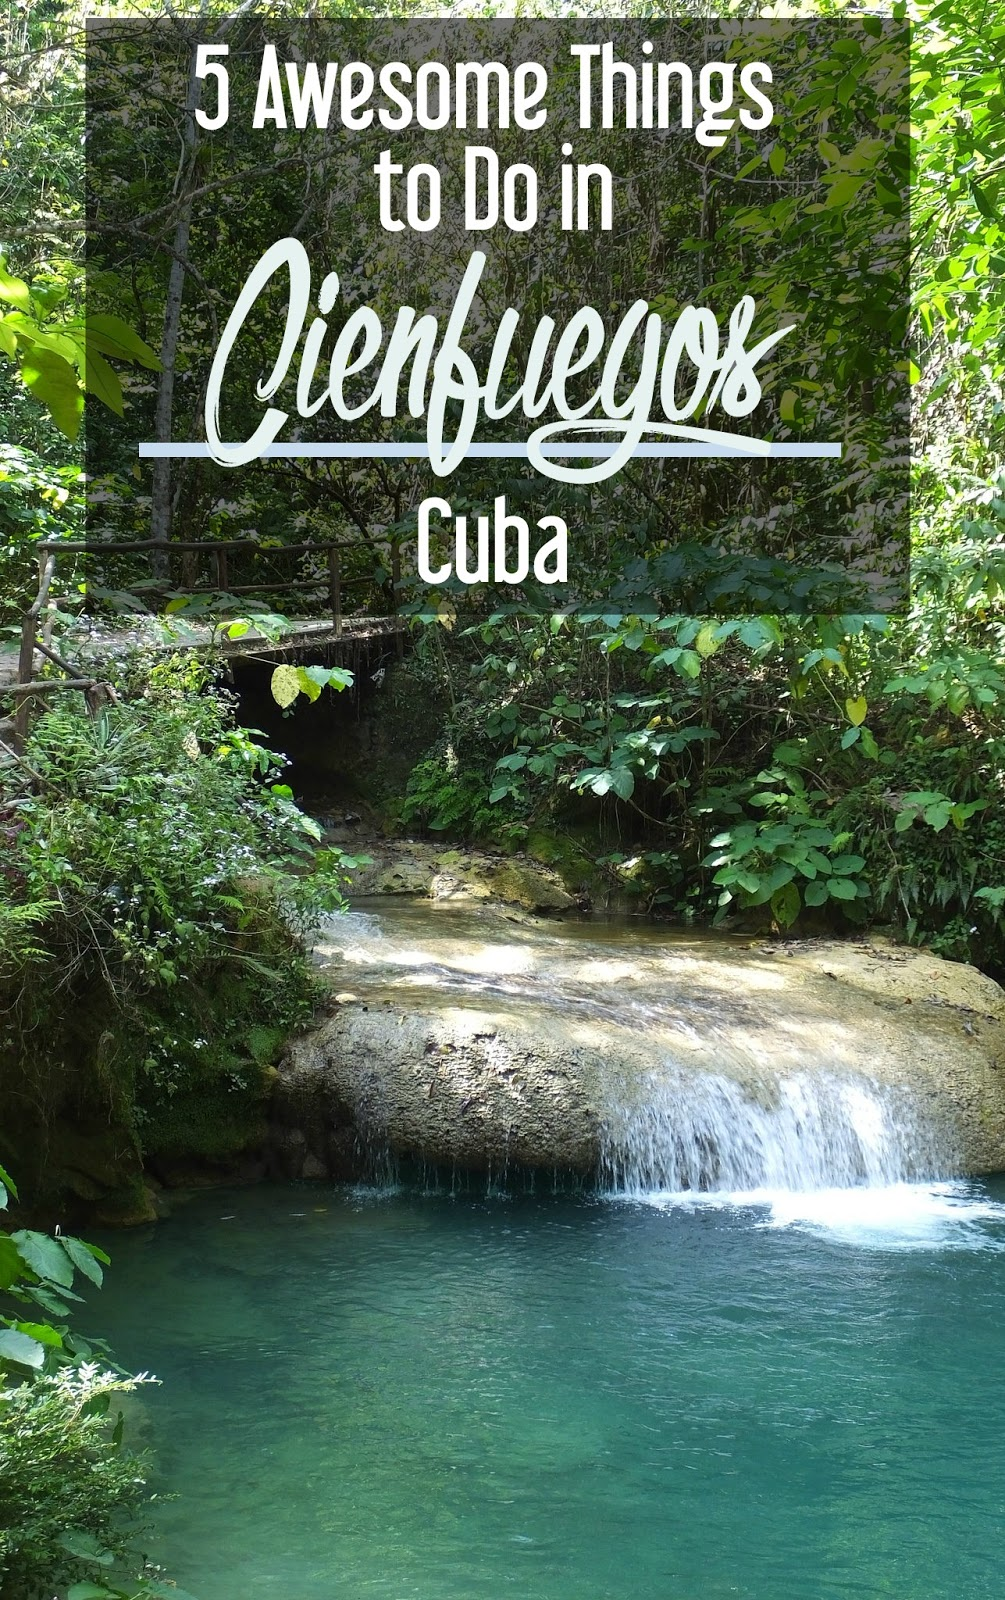 5 Awesome Things to Do in Cienfuegos Cuba  Cosmos Mariners Destination Unknown